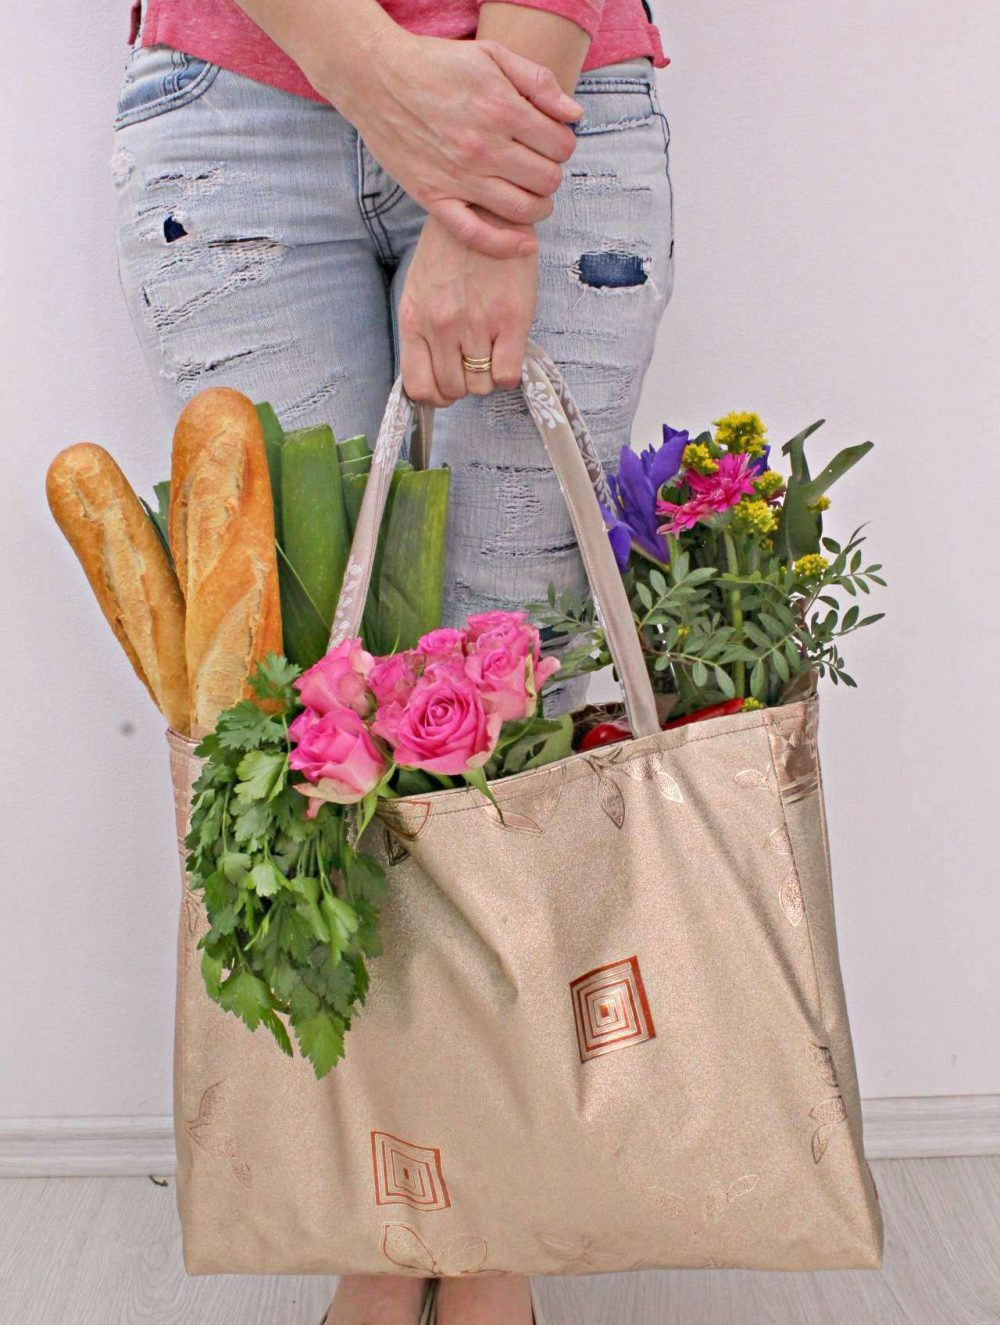 Shopping bag pattern for a vinyl tote bag, filled with flowers herbs and bread